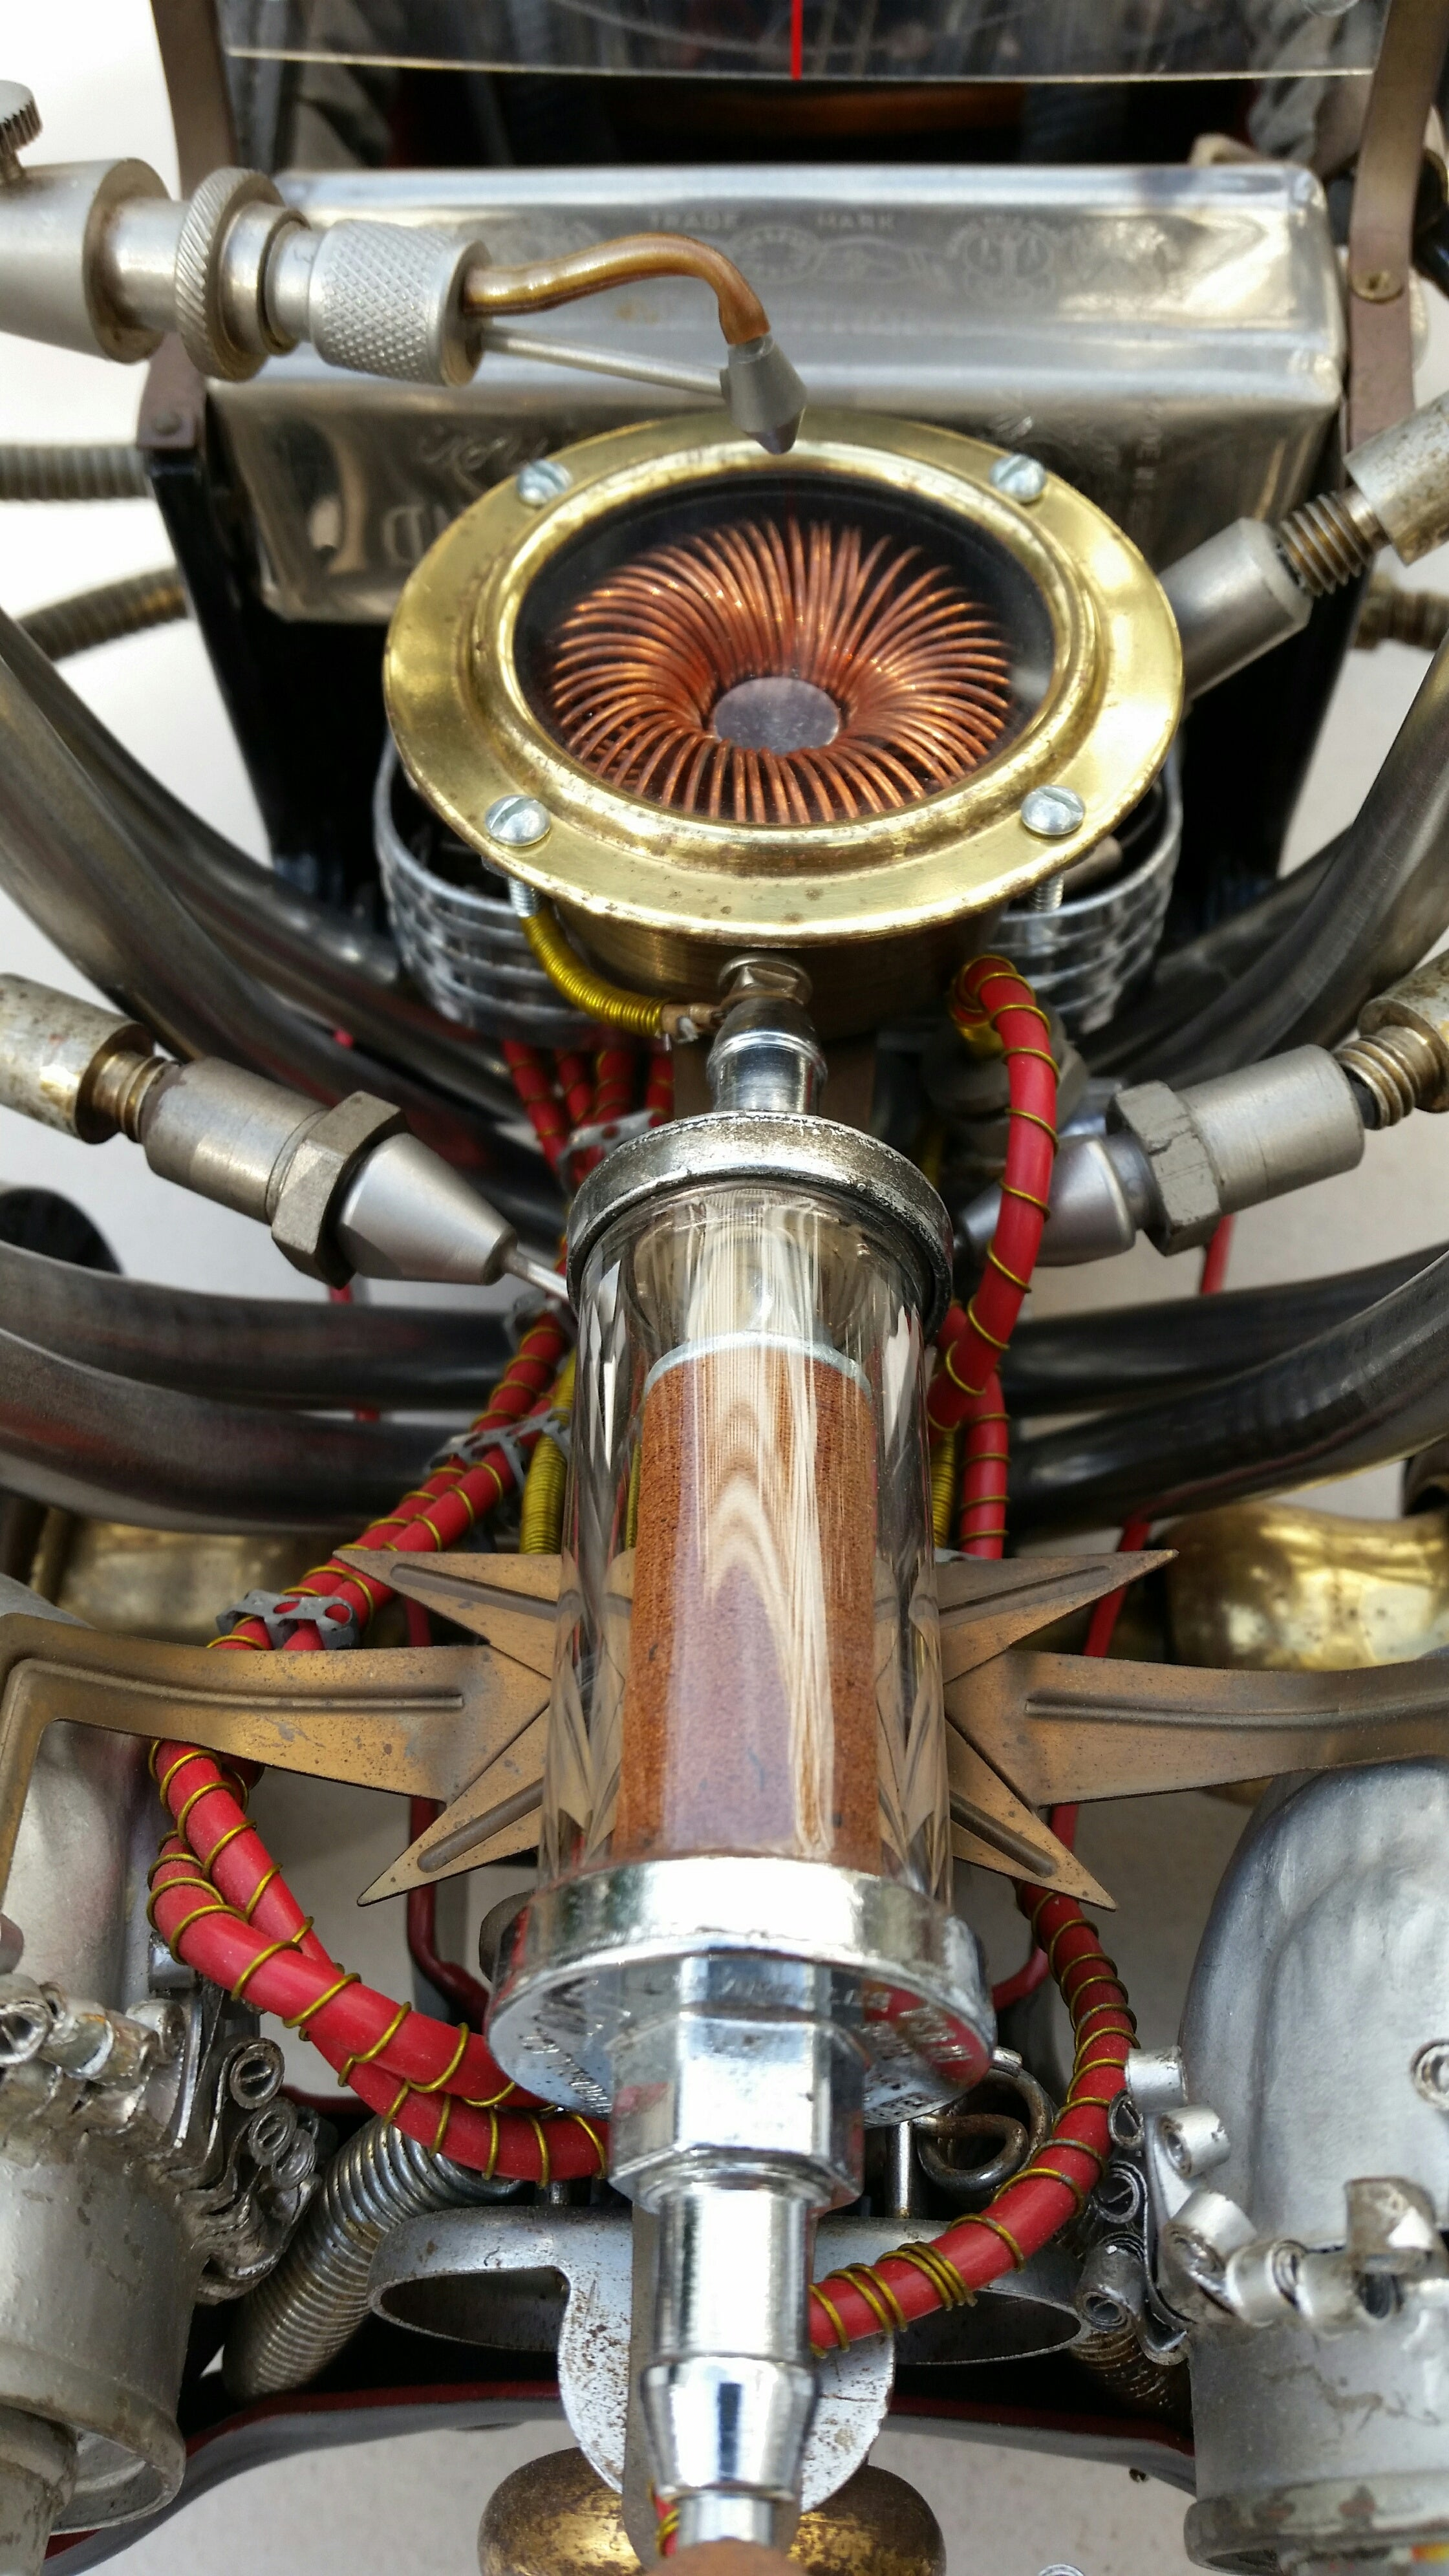 artist rick frausto's multimedia sculpture the hot rod engine detail 1